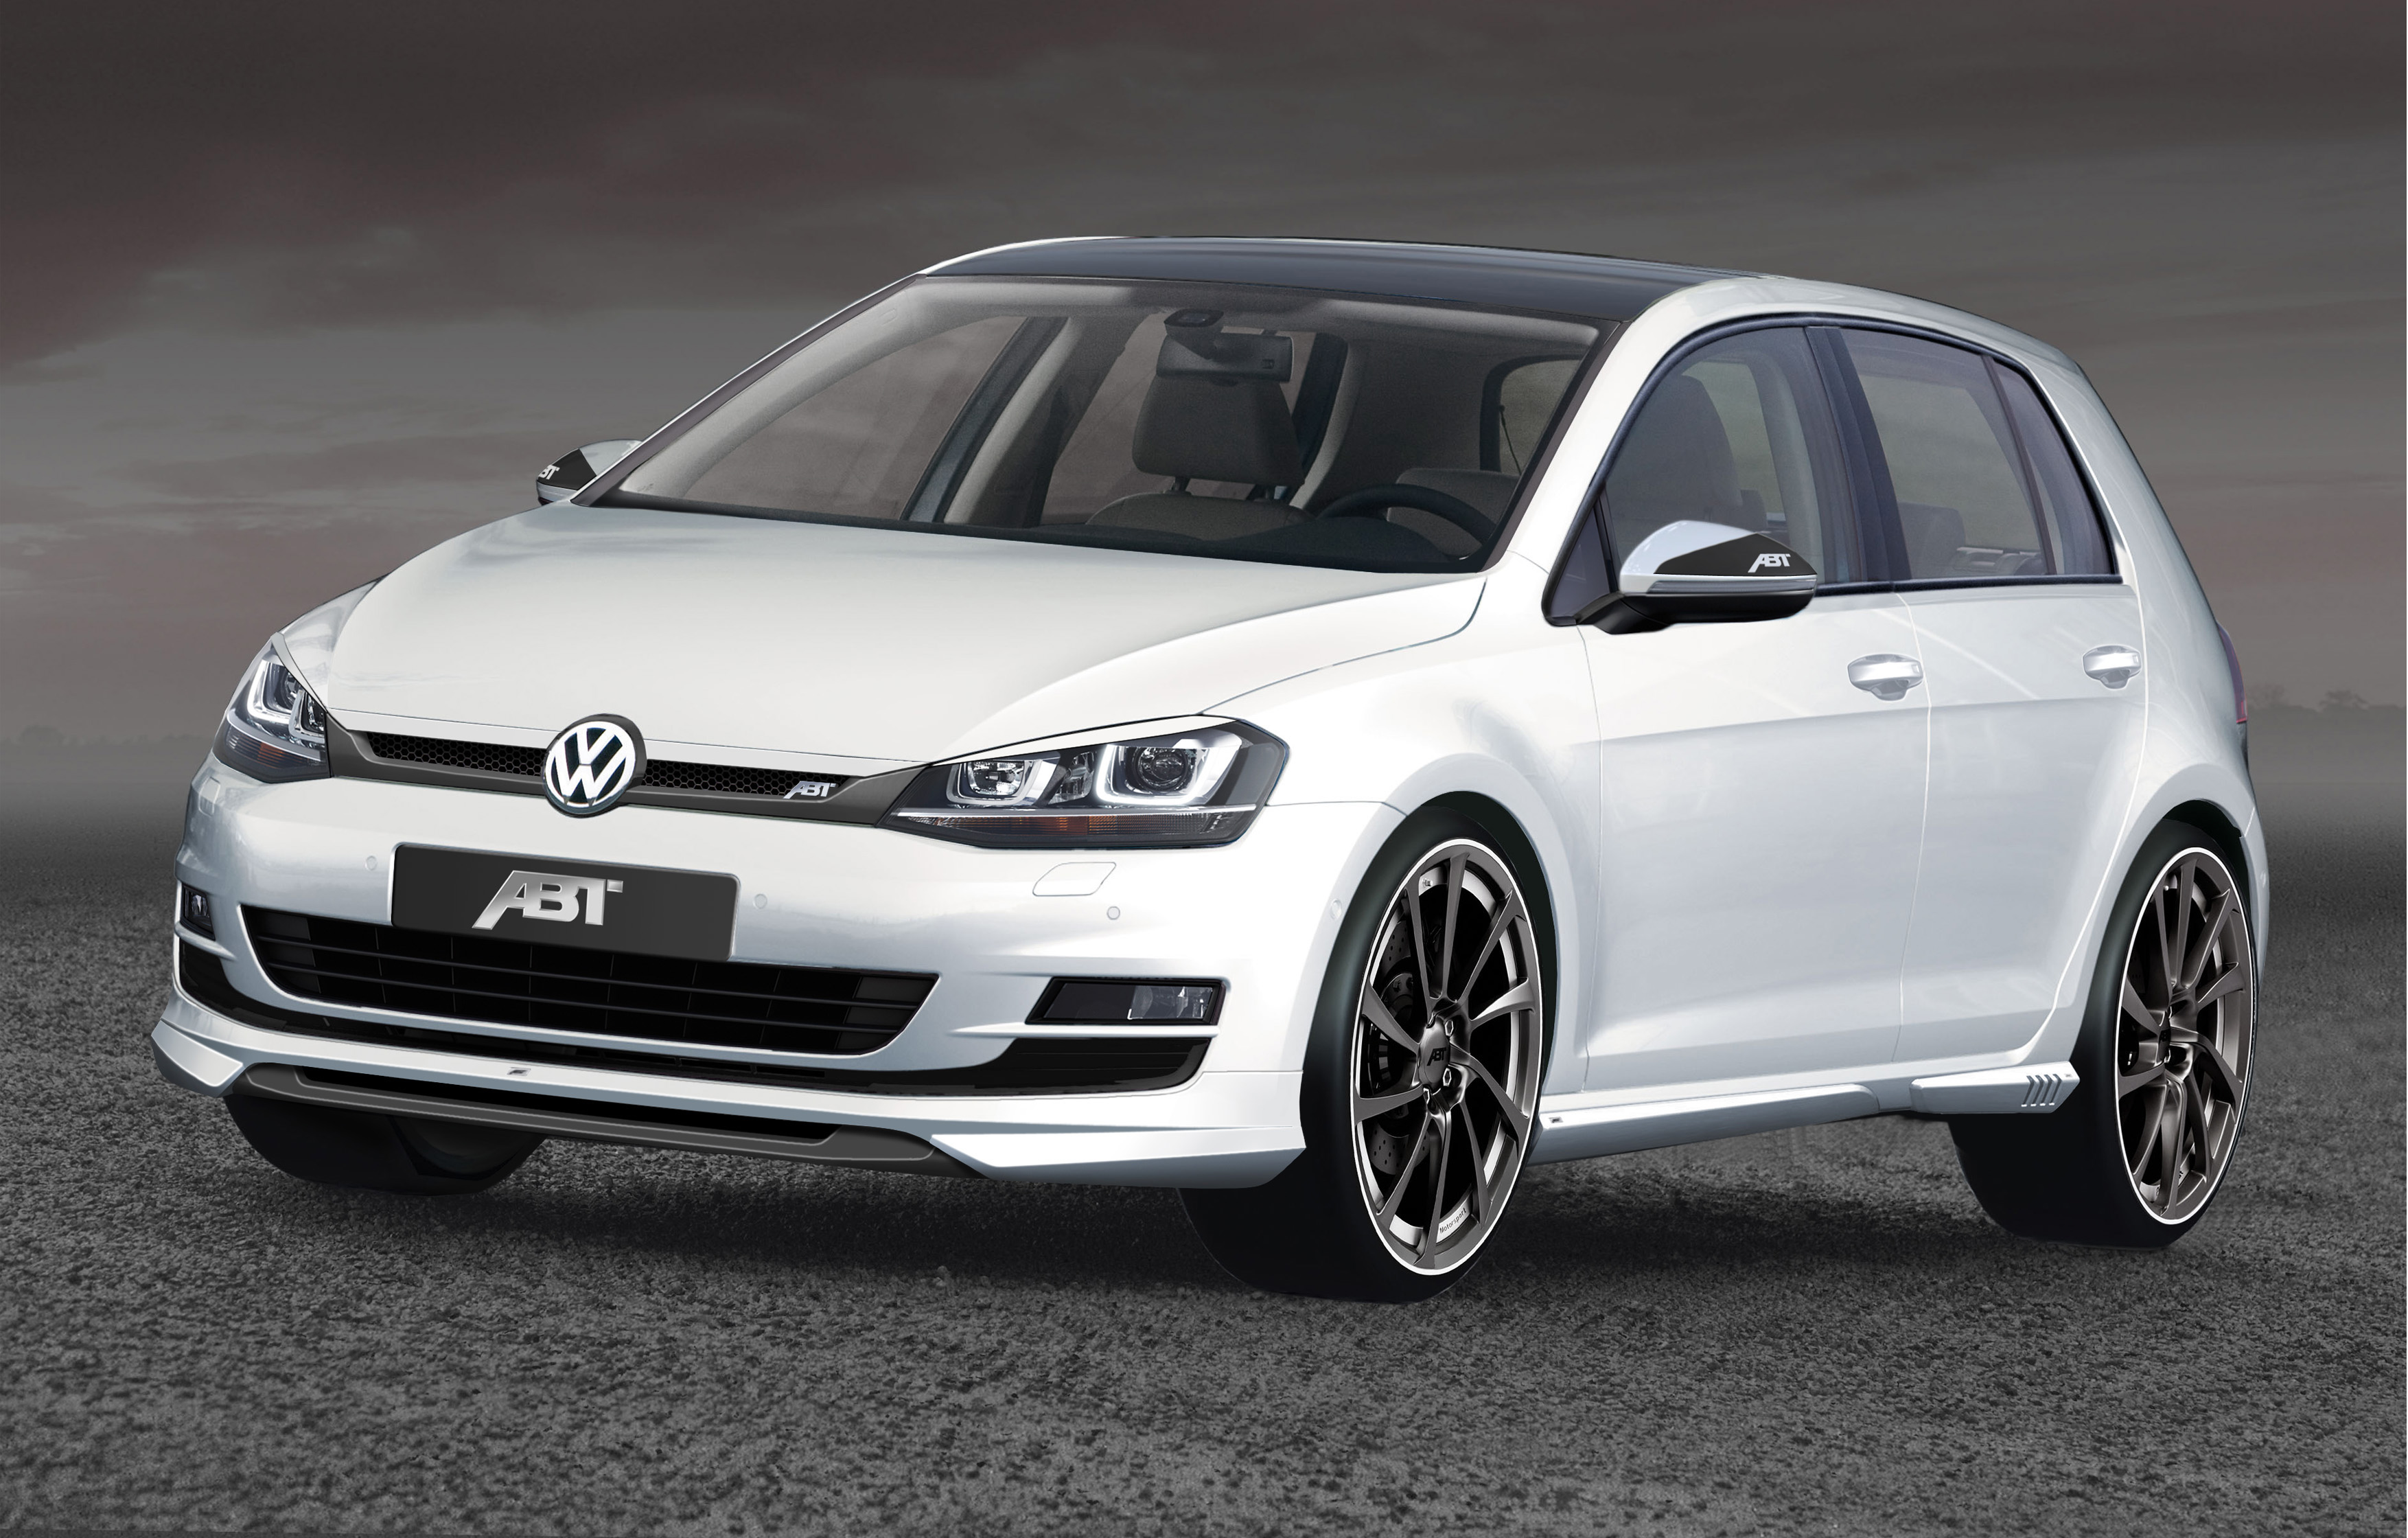 volkswagen golf vii by abt un tuning molto speciale. Black Bedroom Furniture Sets. Home Design Ideas